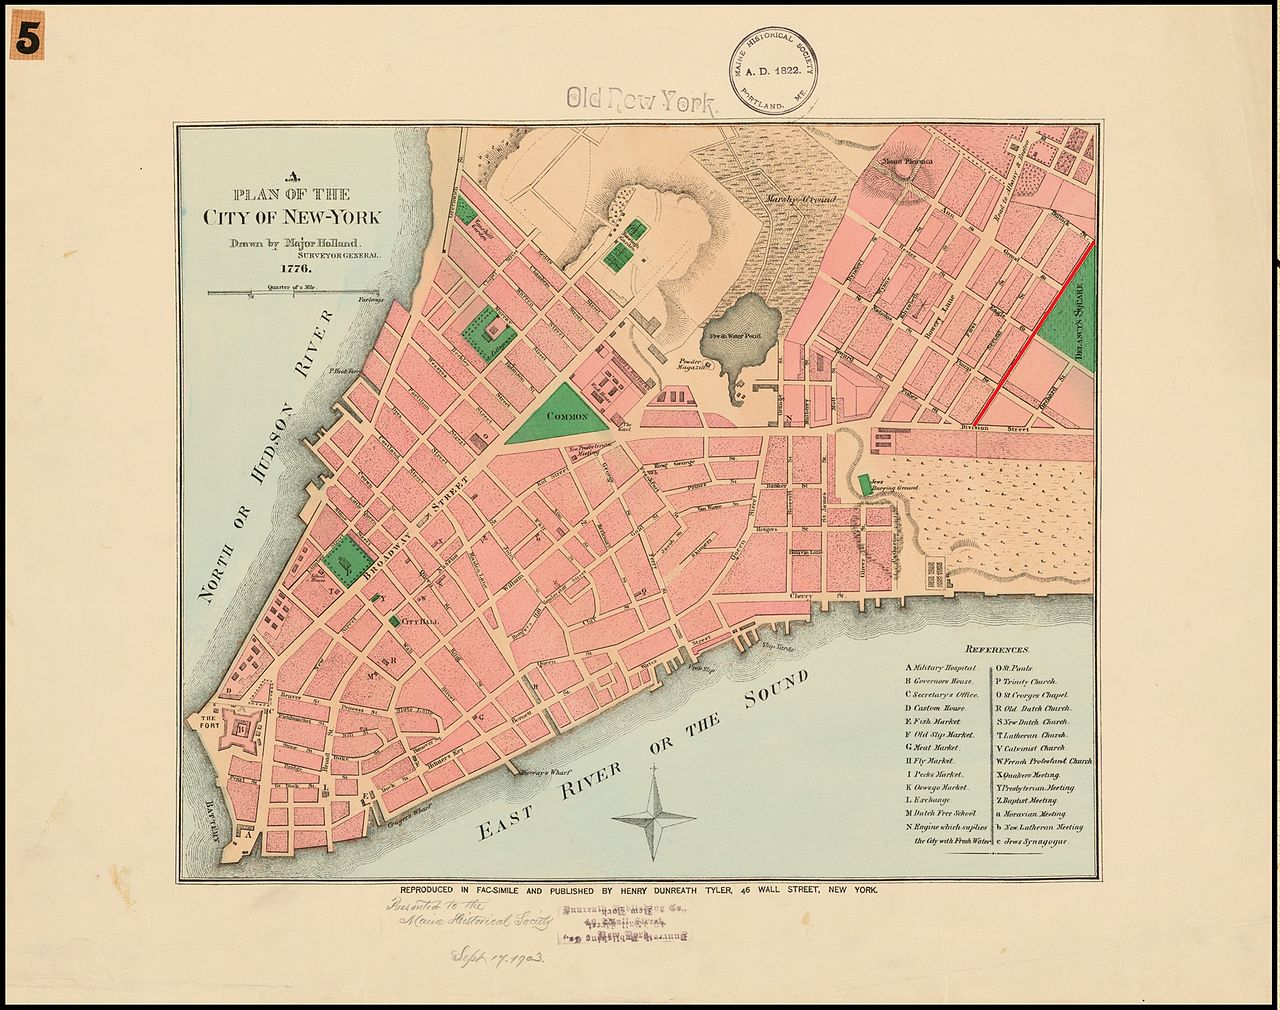 File:Eldridge Street in A Plan of the City of New York (1776) jpg